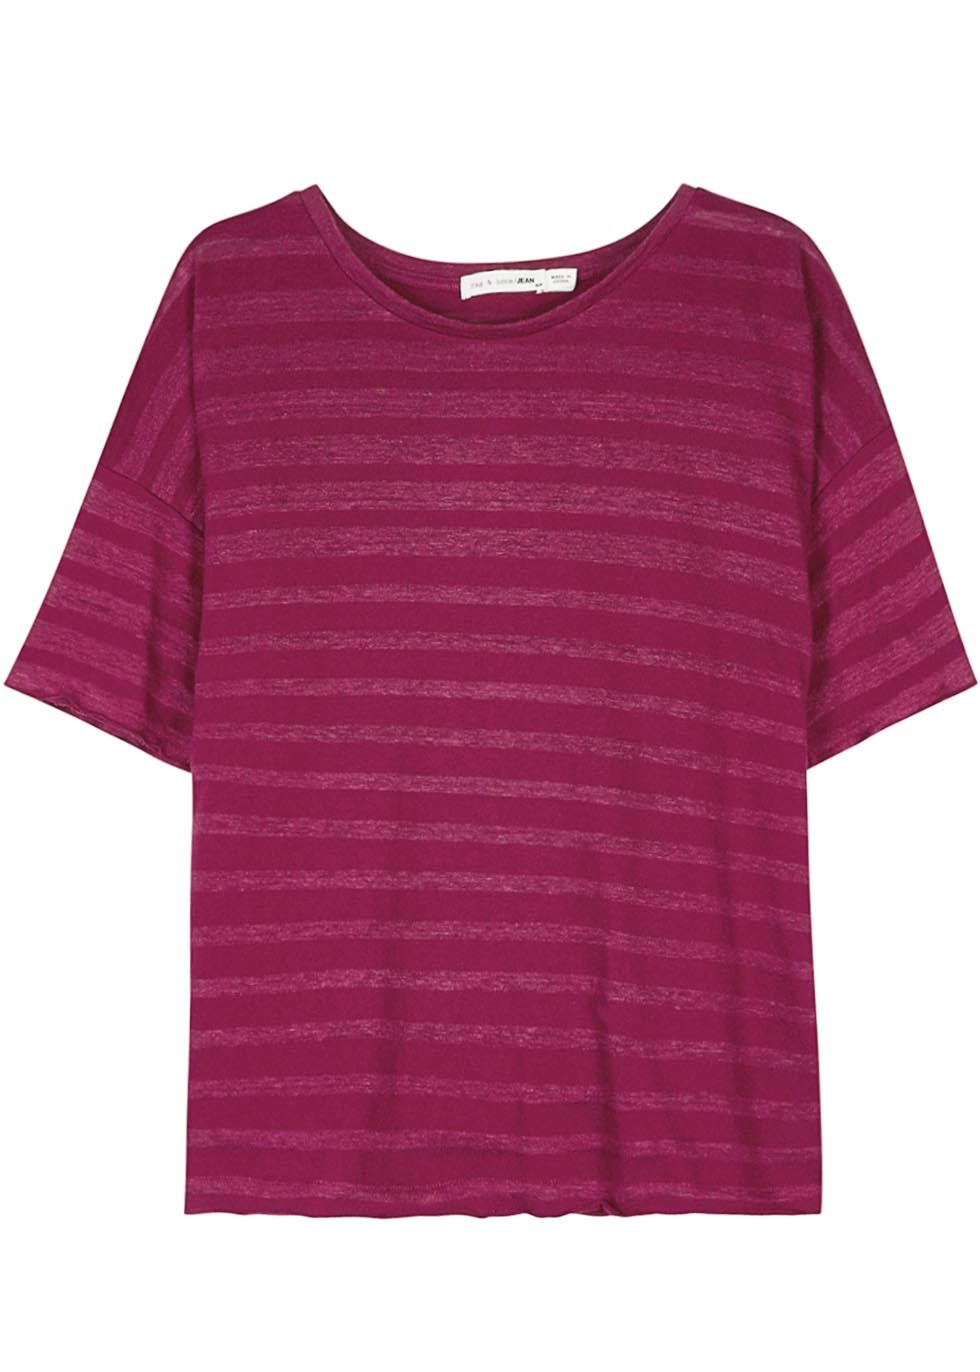 Raspberry Striped Cotton Blend T Shirt - neckline: round neck; pattern: horizontal stripes; style: t-shirt; occasions: casual; length: standard; fibres: cotton - mix; fit: loose; sleeve length: short sleeve; sleeve style: standard; pattern type: fabric; pattern size: standard; texture group: jersey - stretchy/drapey; predominant colour: raspberry; season: s/s 2016; wardrobe: highlight